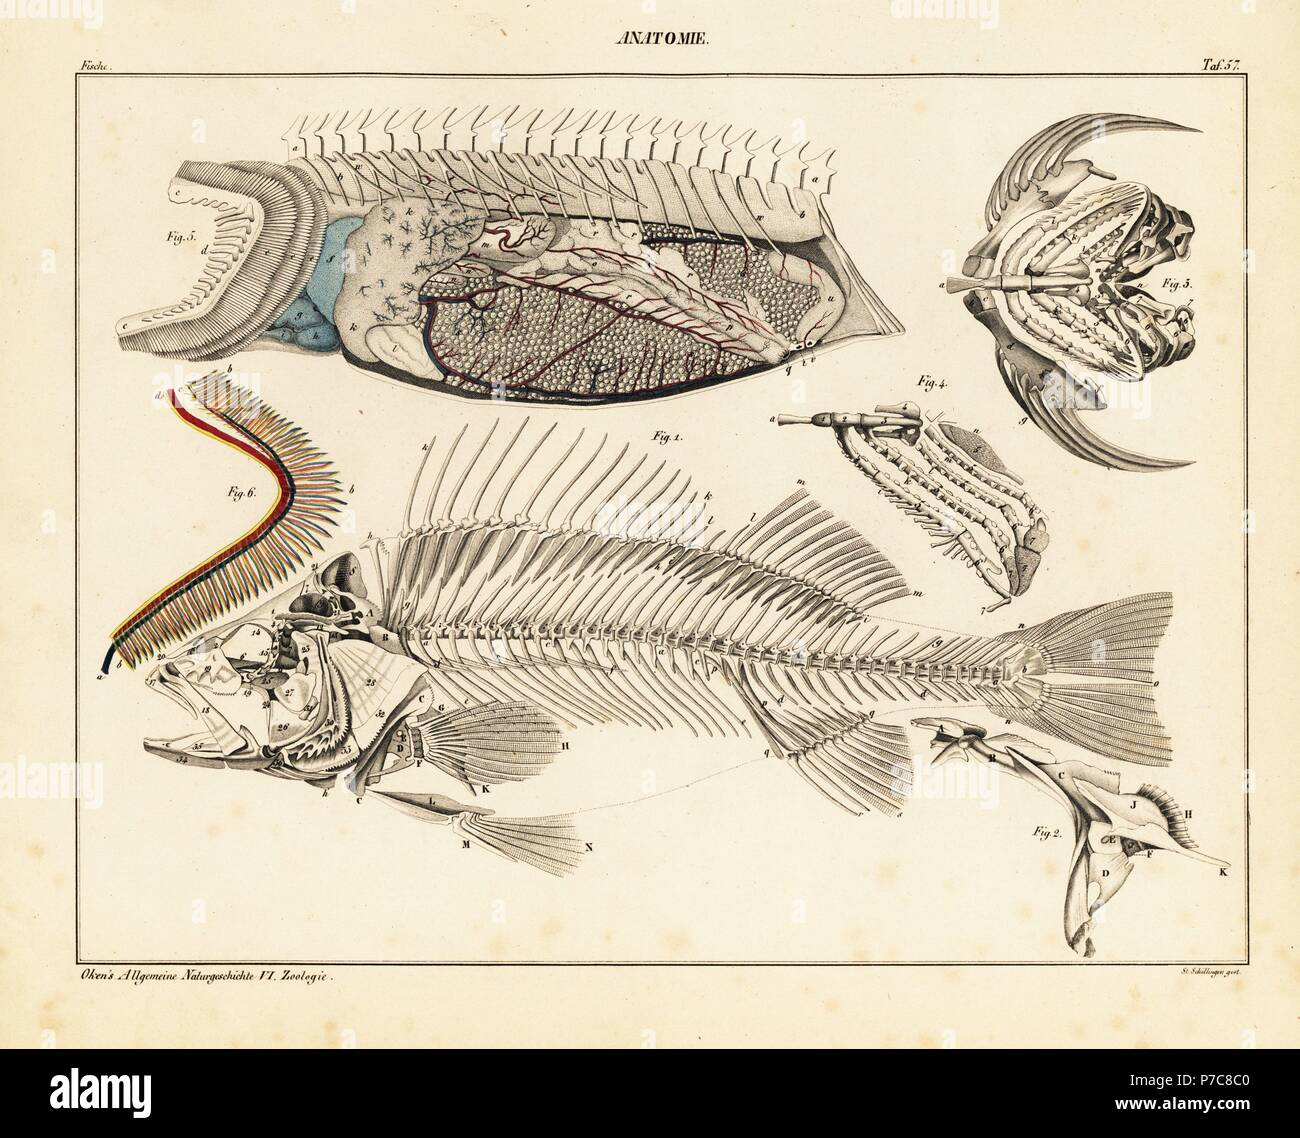 Anatomy Of A Fish Showing Skeleton Internal Organs And Gills